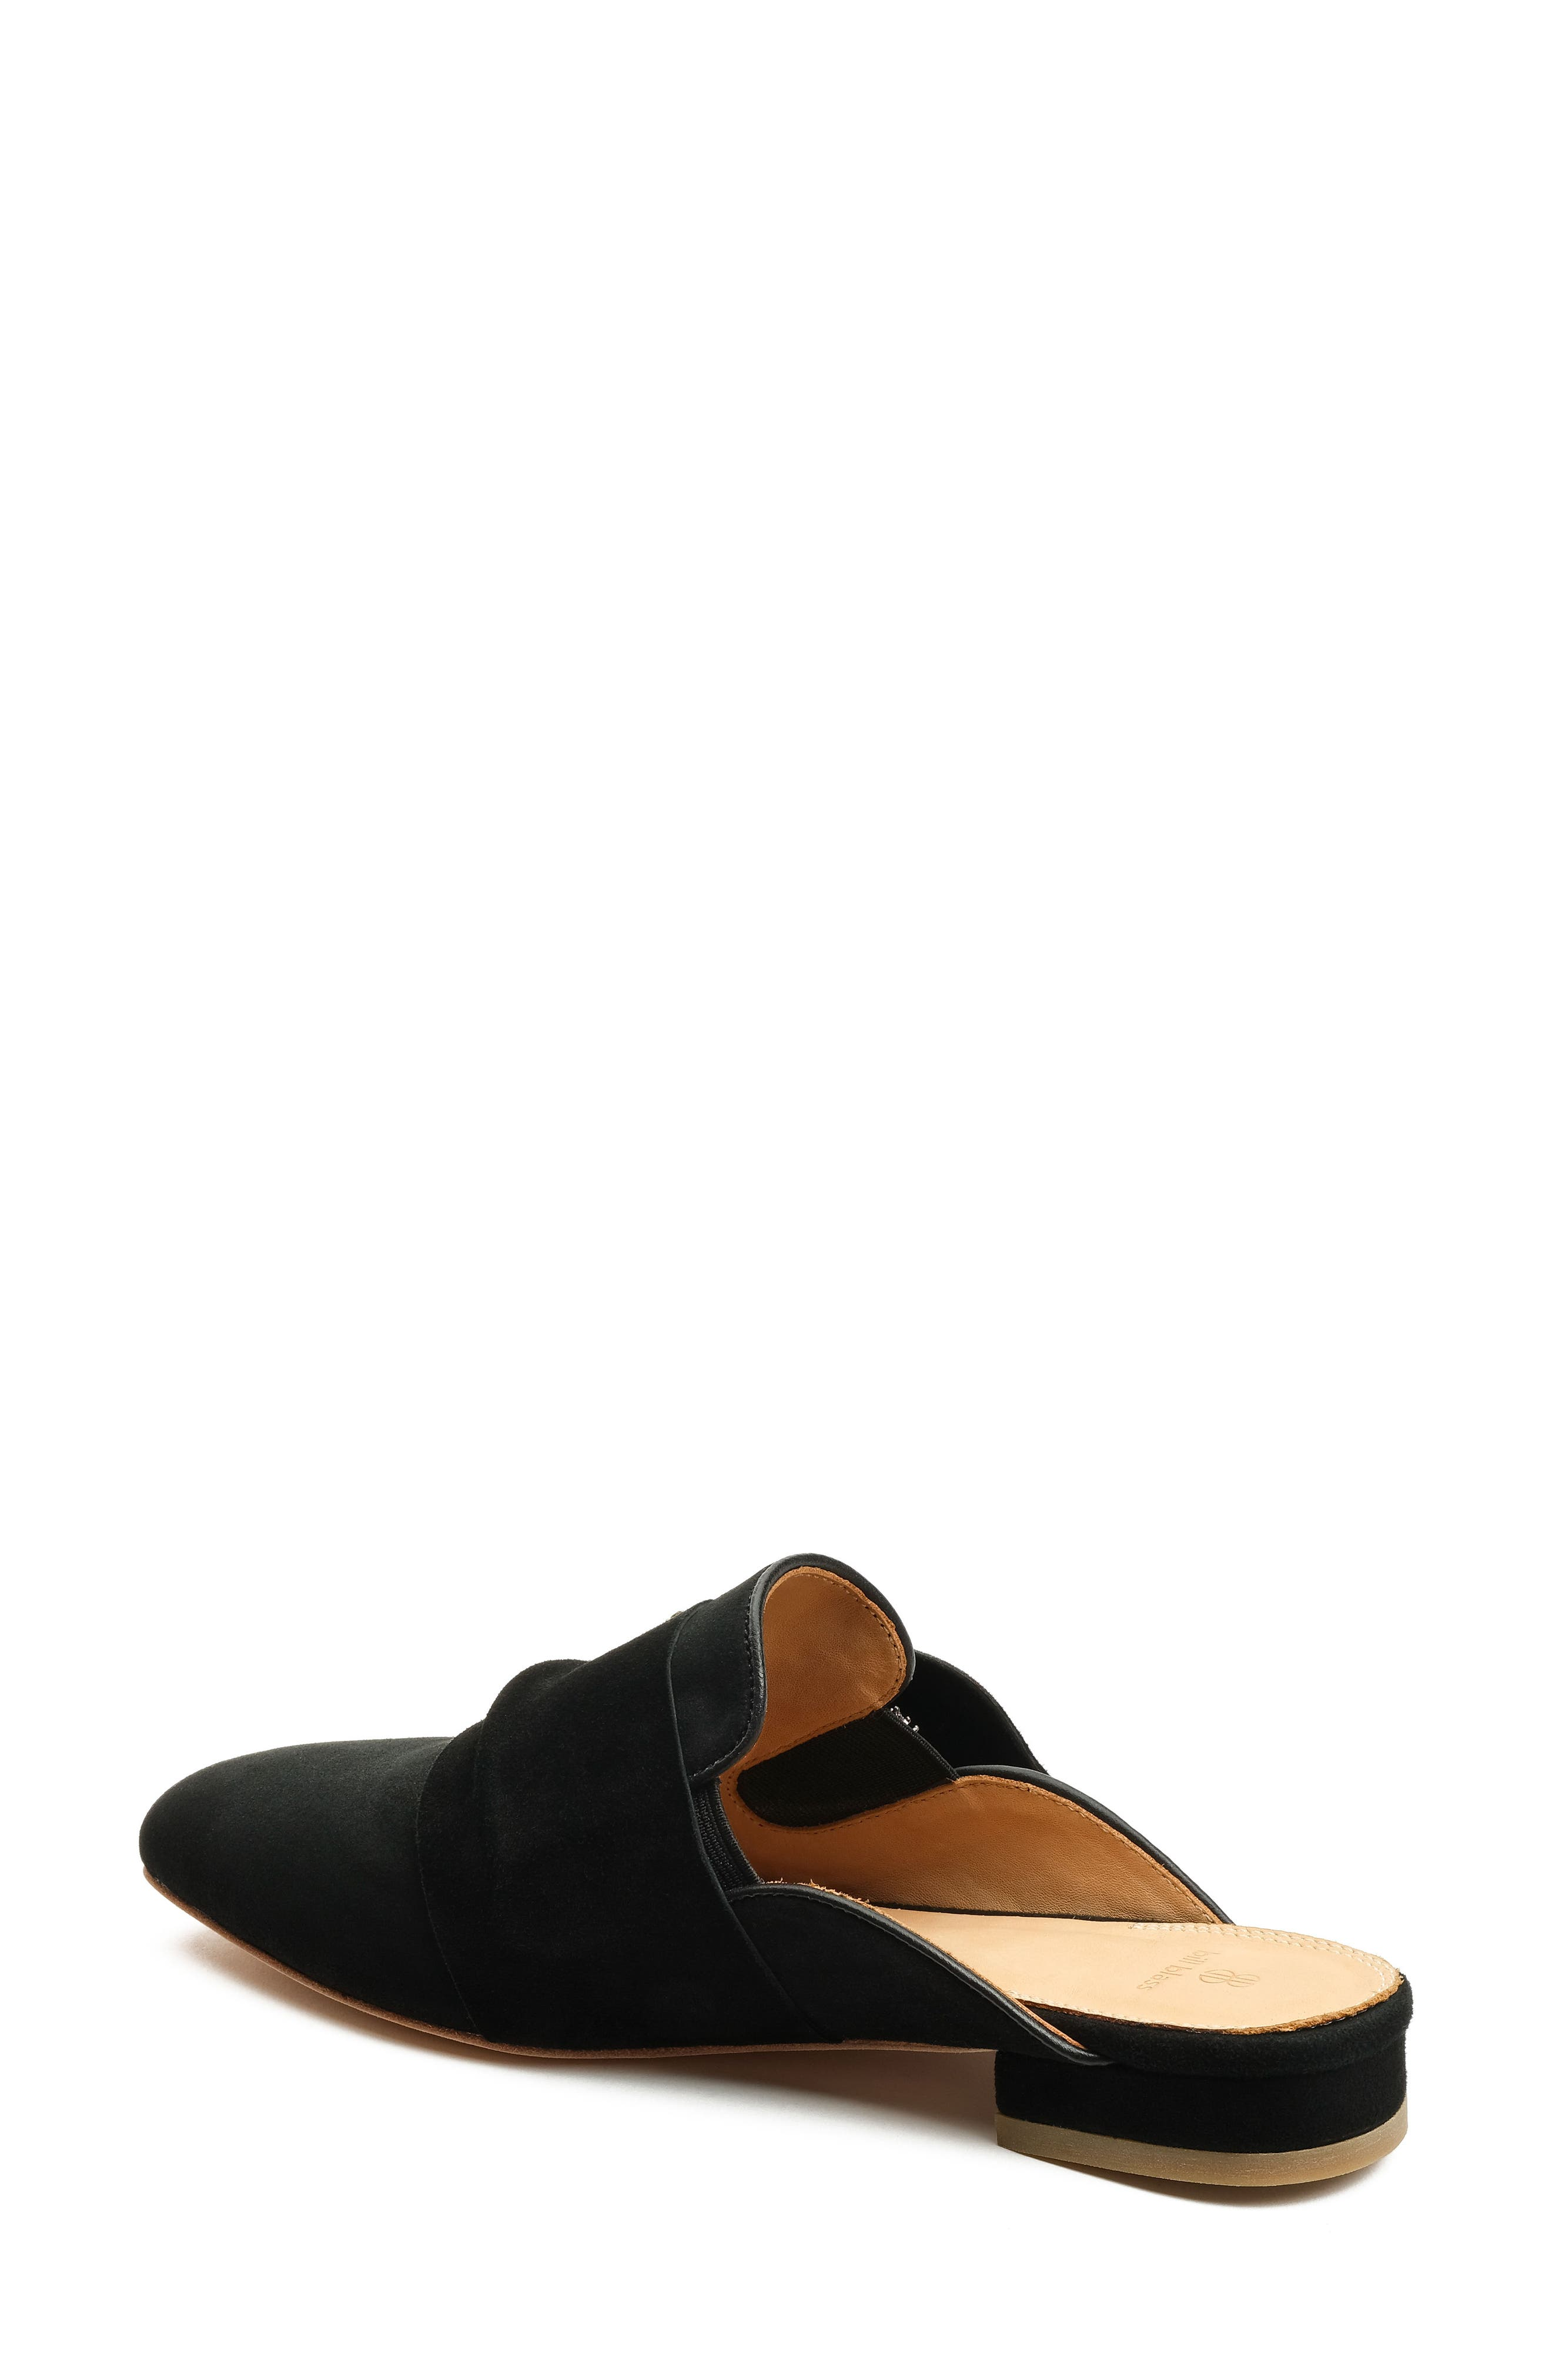 Laverne Tie Slide,                             Alternate thumbnail 2, color,                             Black Suede